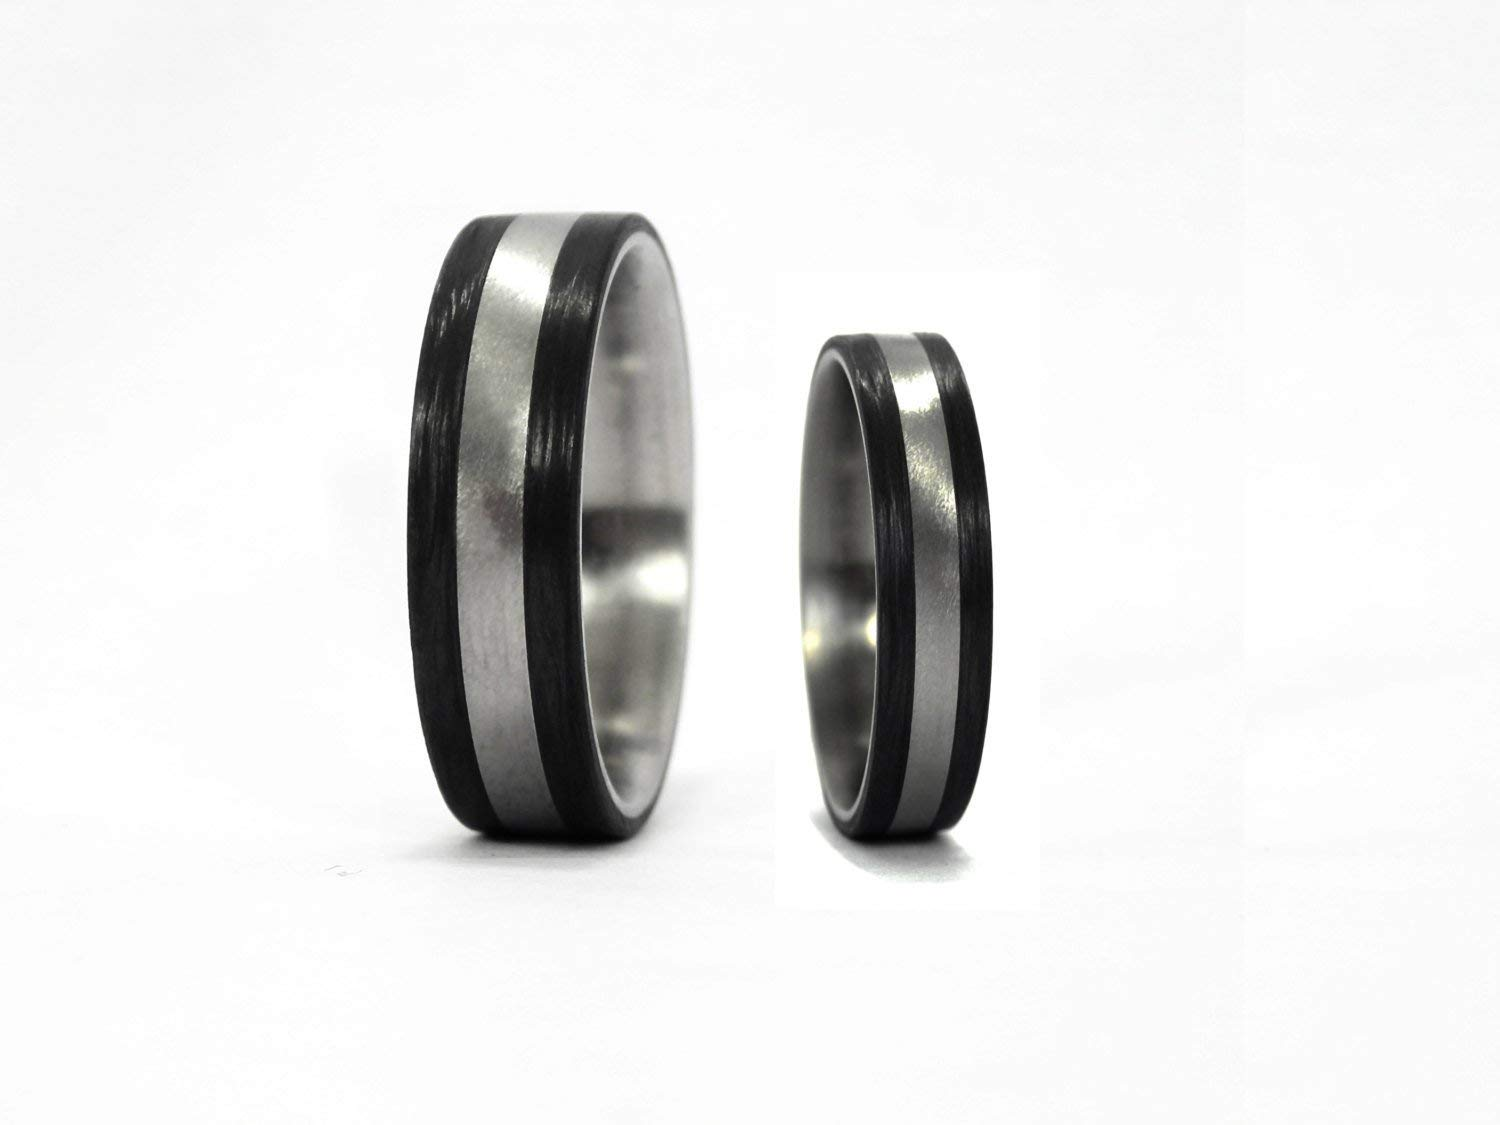 Set of two titanium and carbon fiber wedding bands 00305/_4S1/_4N Modern and round black rings Water resistant and hypoallergenic.